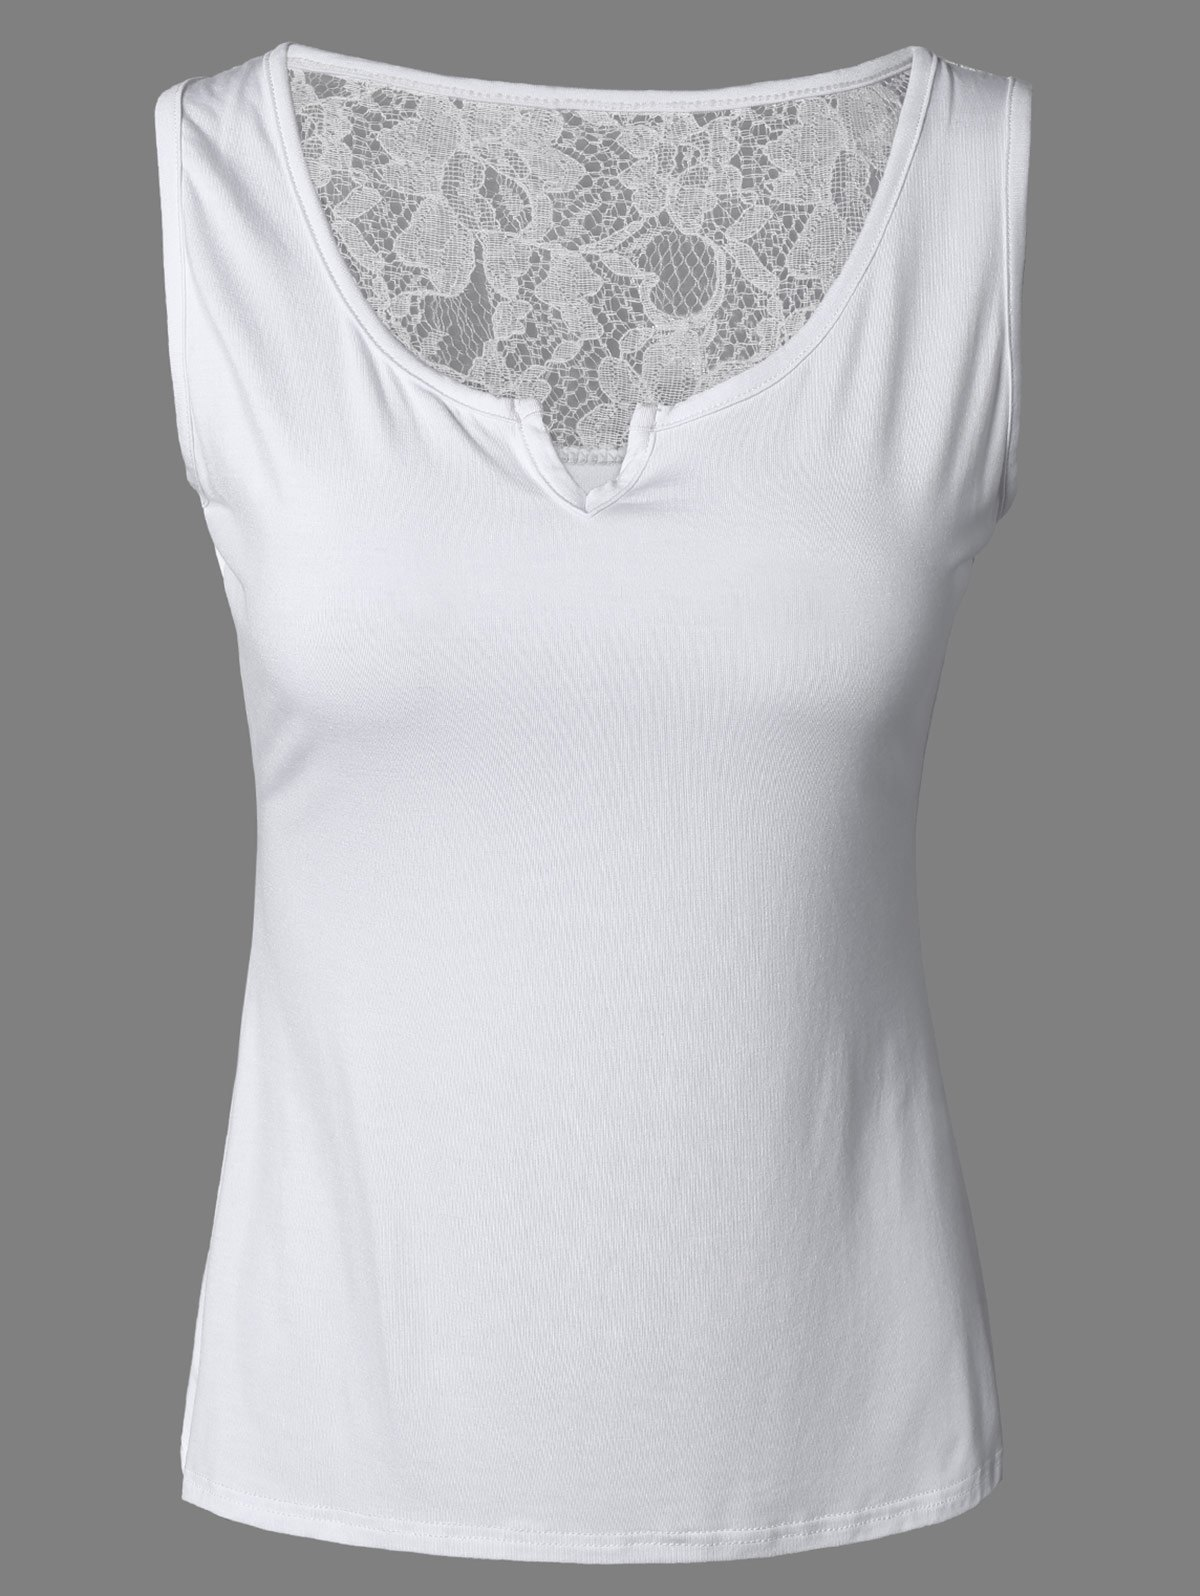 Brief Pure Color Lace Tank Top For Women